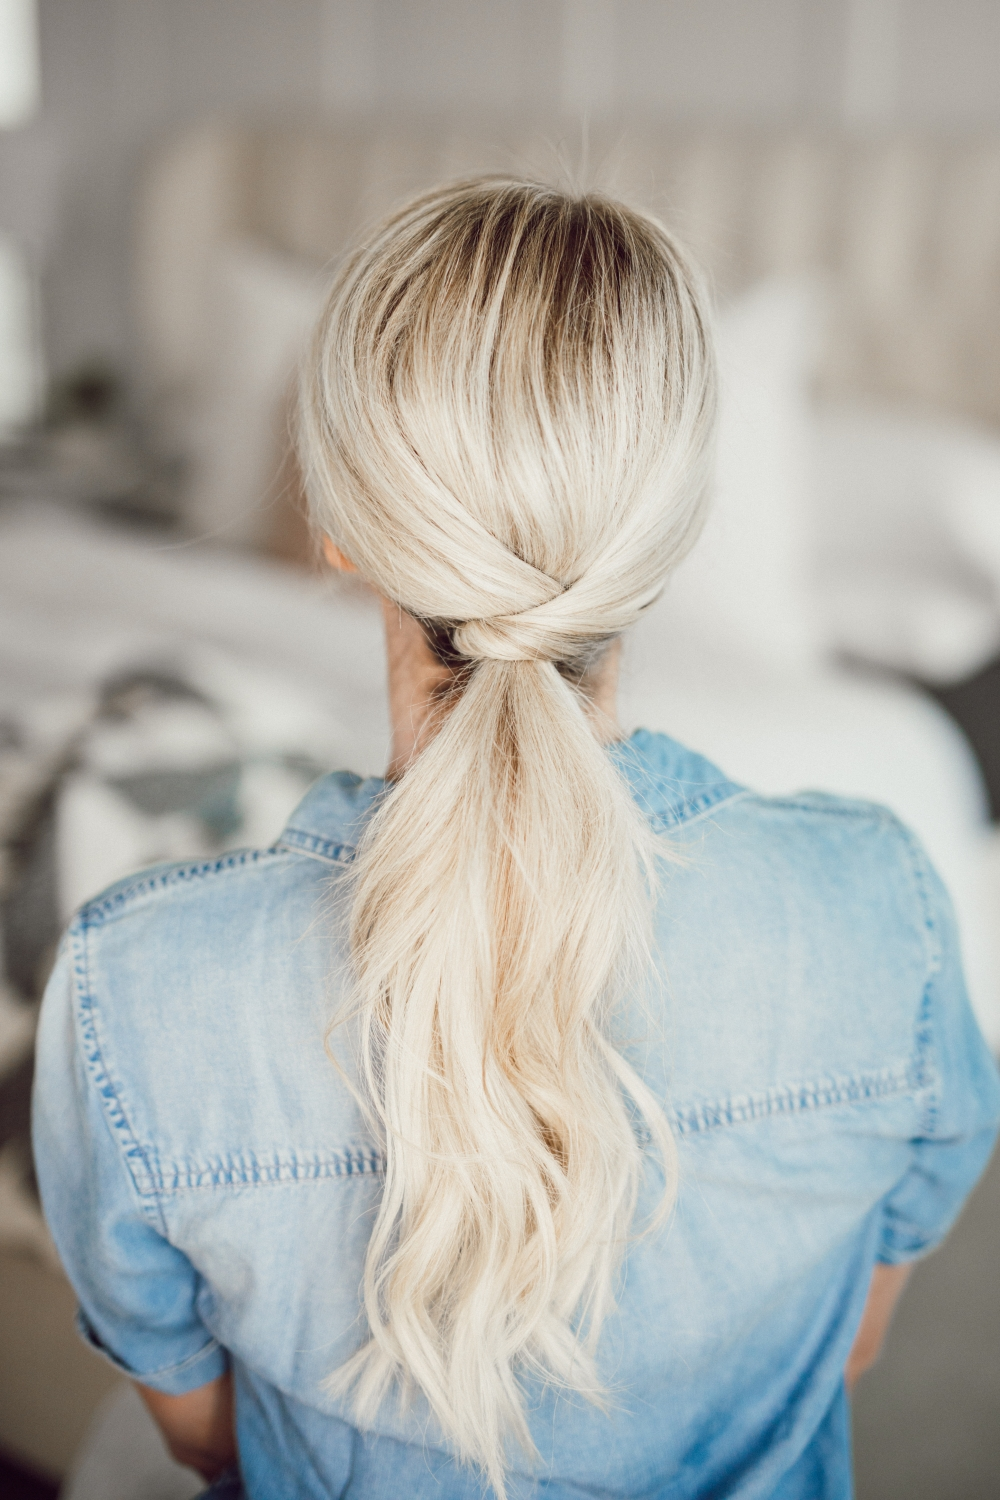 Great hairstyles for back to school in 2020! www.twistmepretty.com